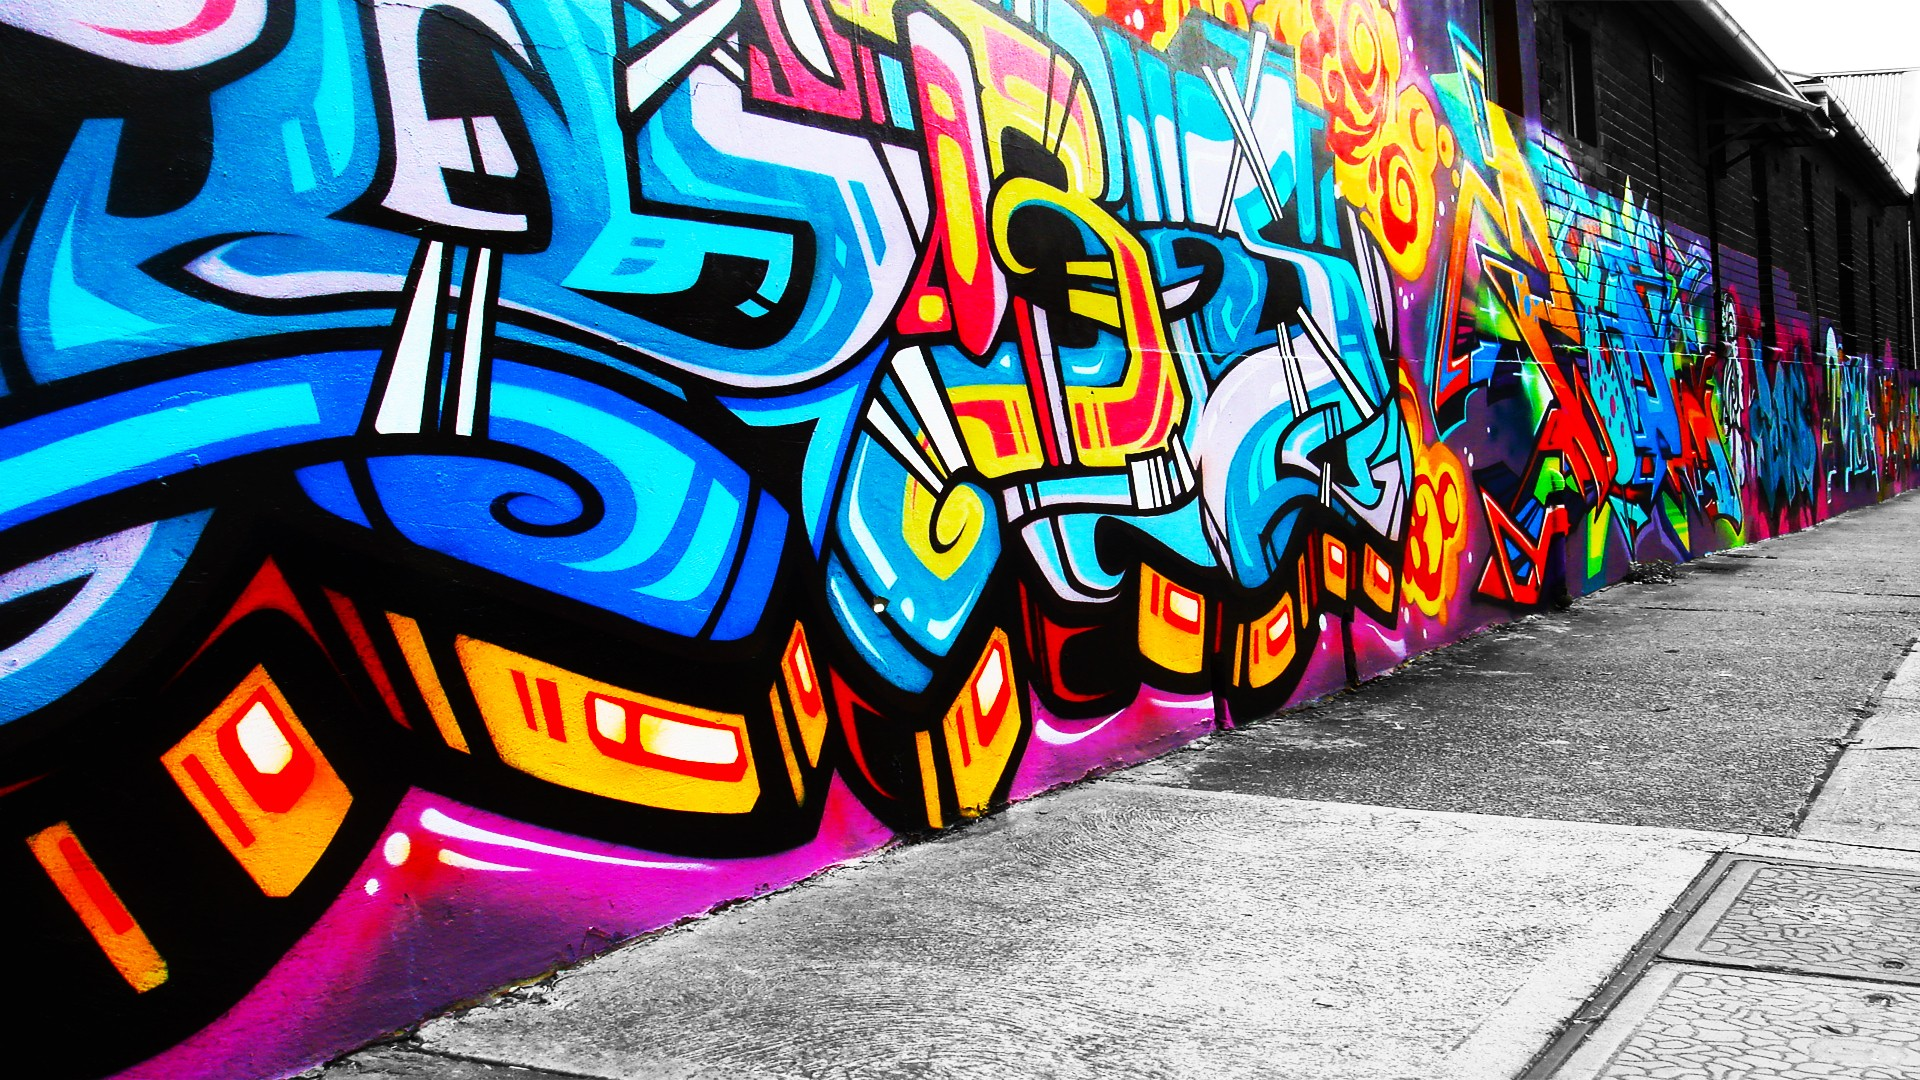 Street graffiti artwork wallpaper area hd wallpapers for Graffiti wallpaper